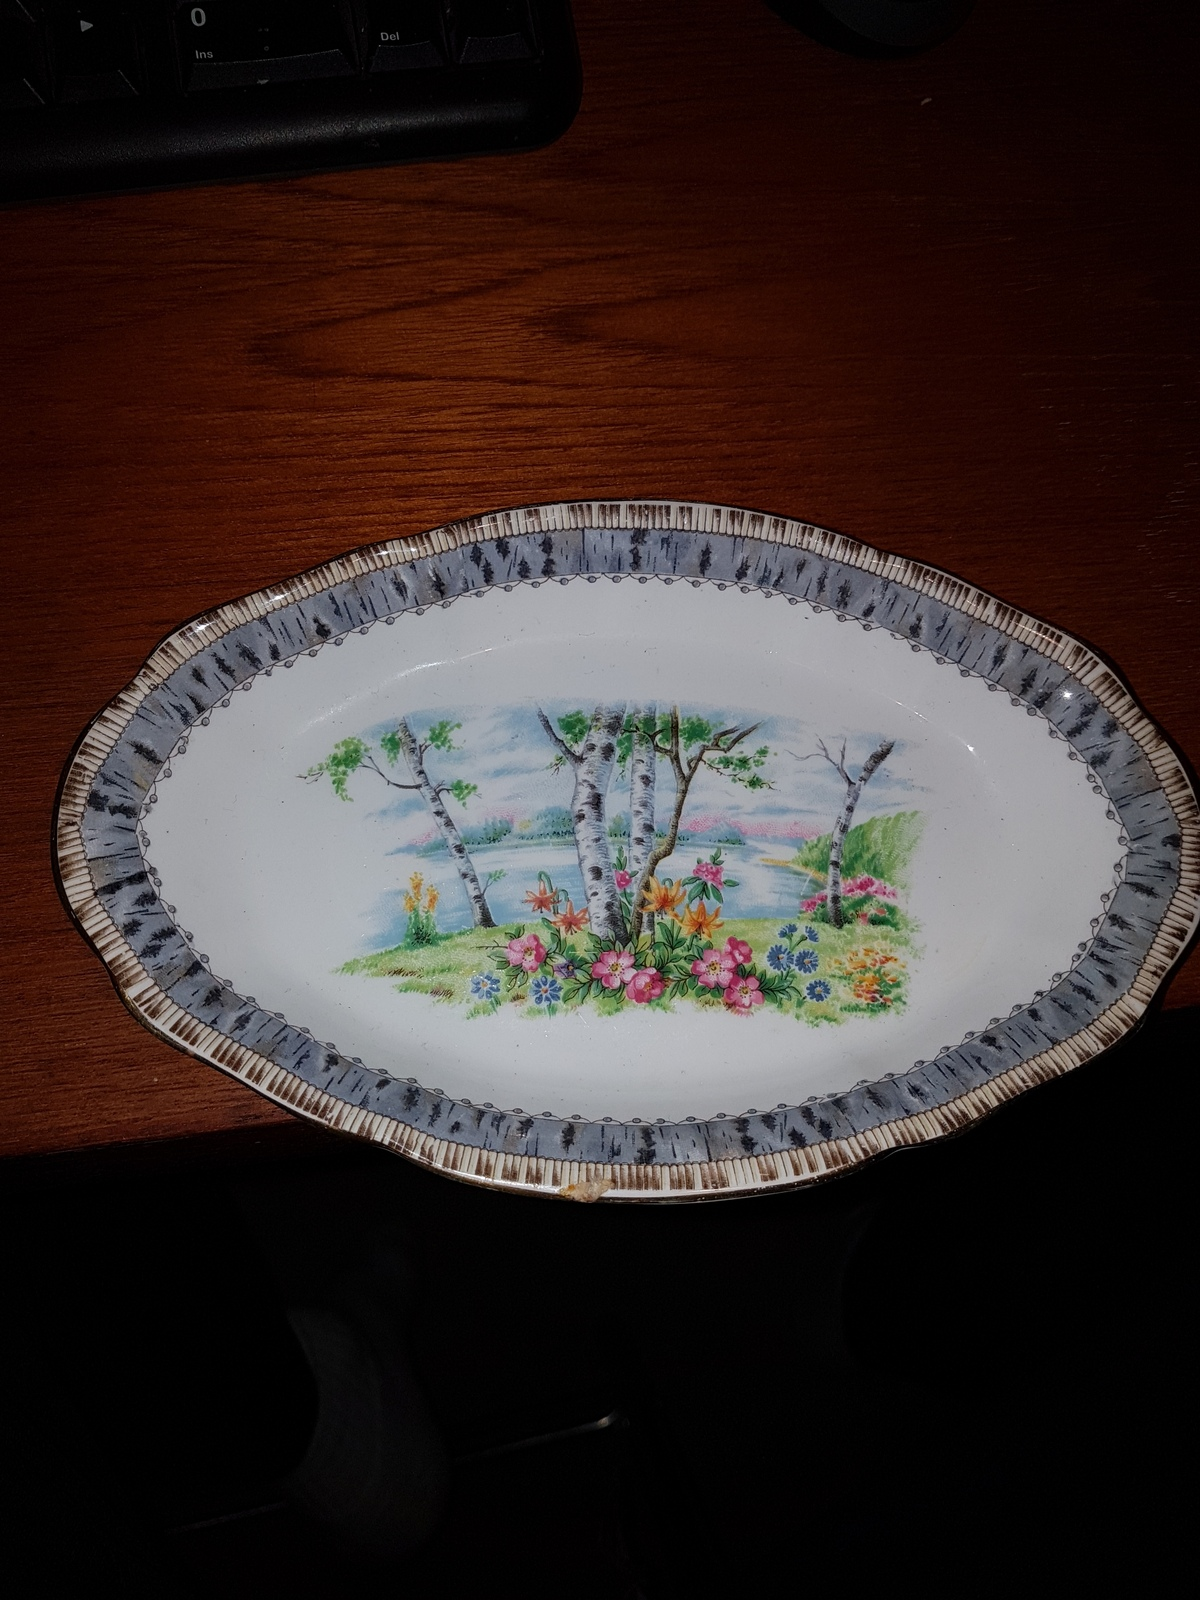 Primary image for Silver Birch tray bone China Royal Albert #32